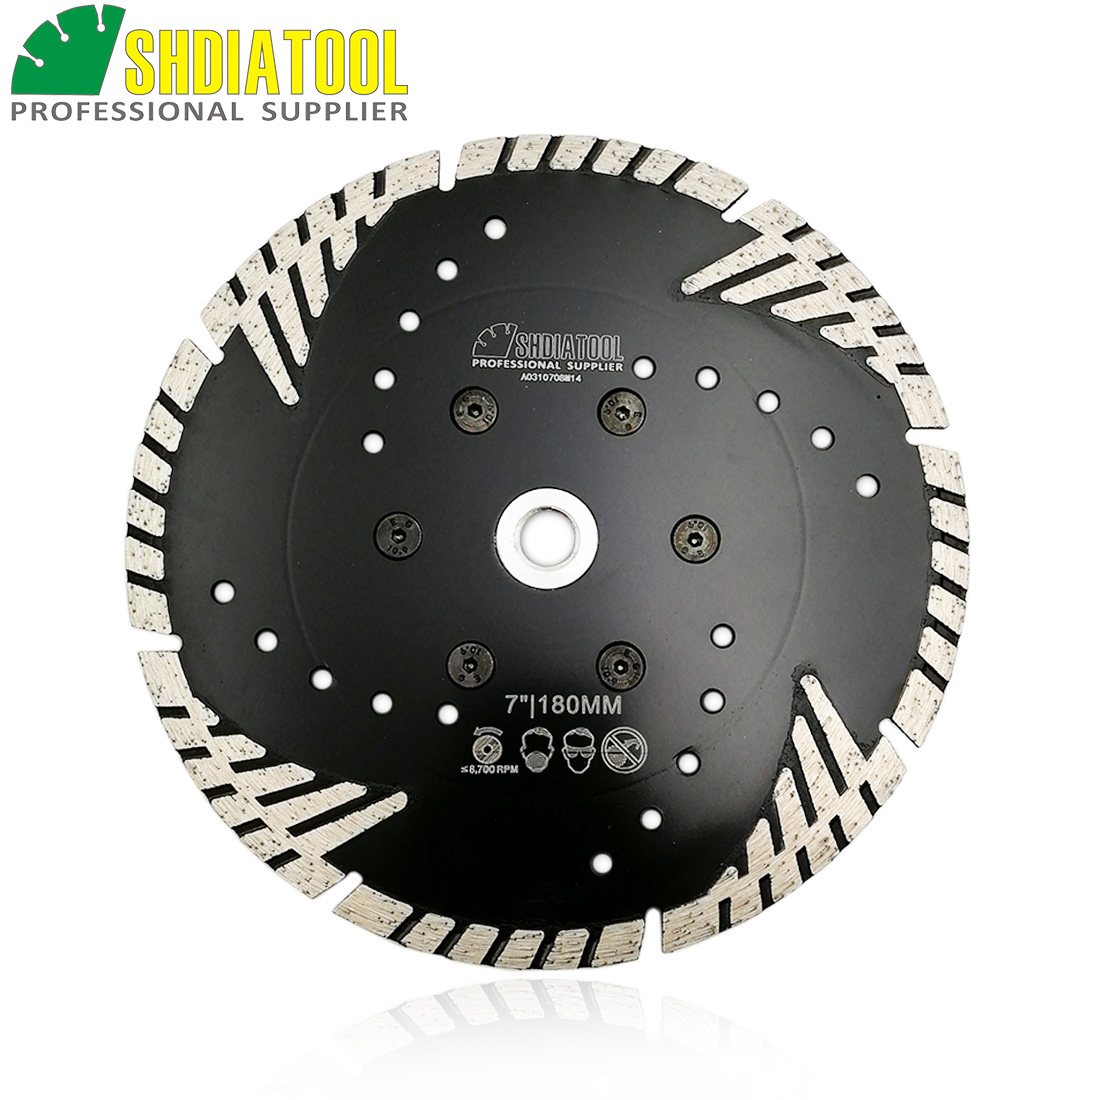 SHDIATOOL 180mm Hot Pressed Diamond Turbo Blade With Slant Protection Teeth7